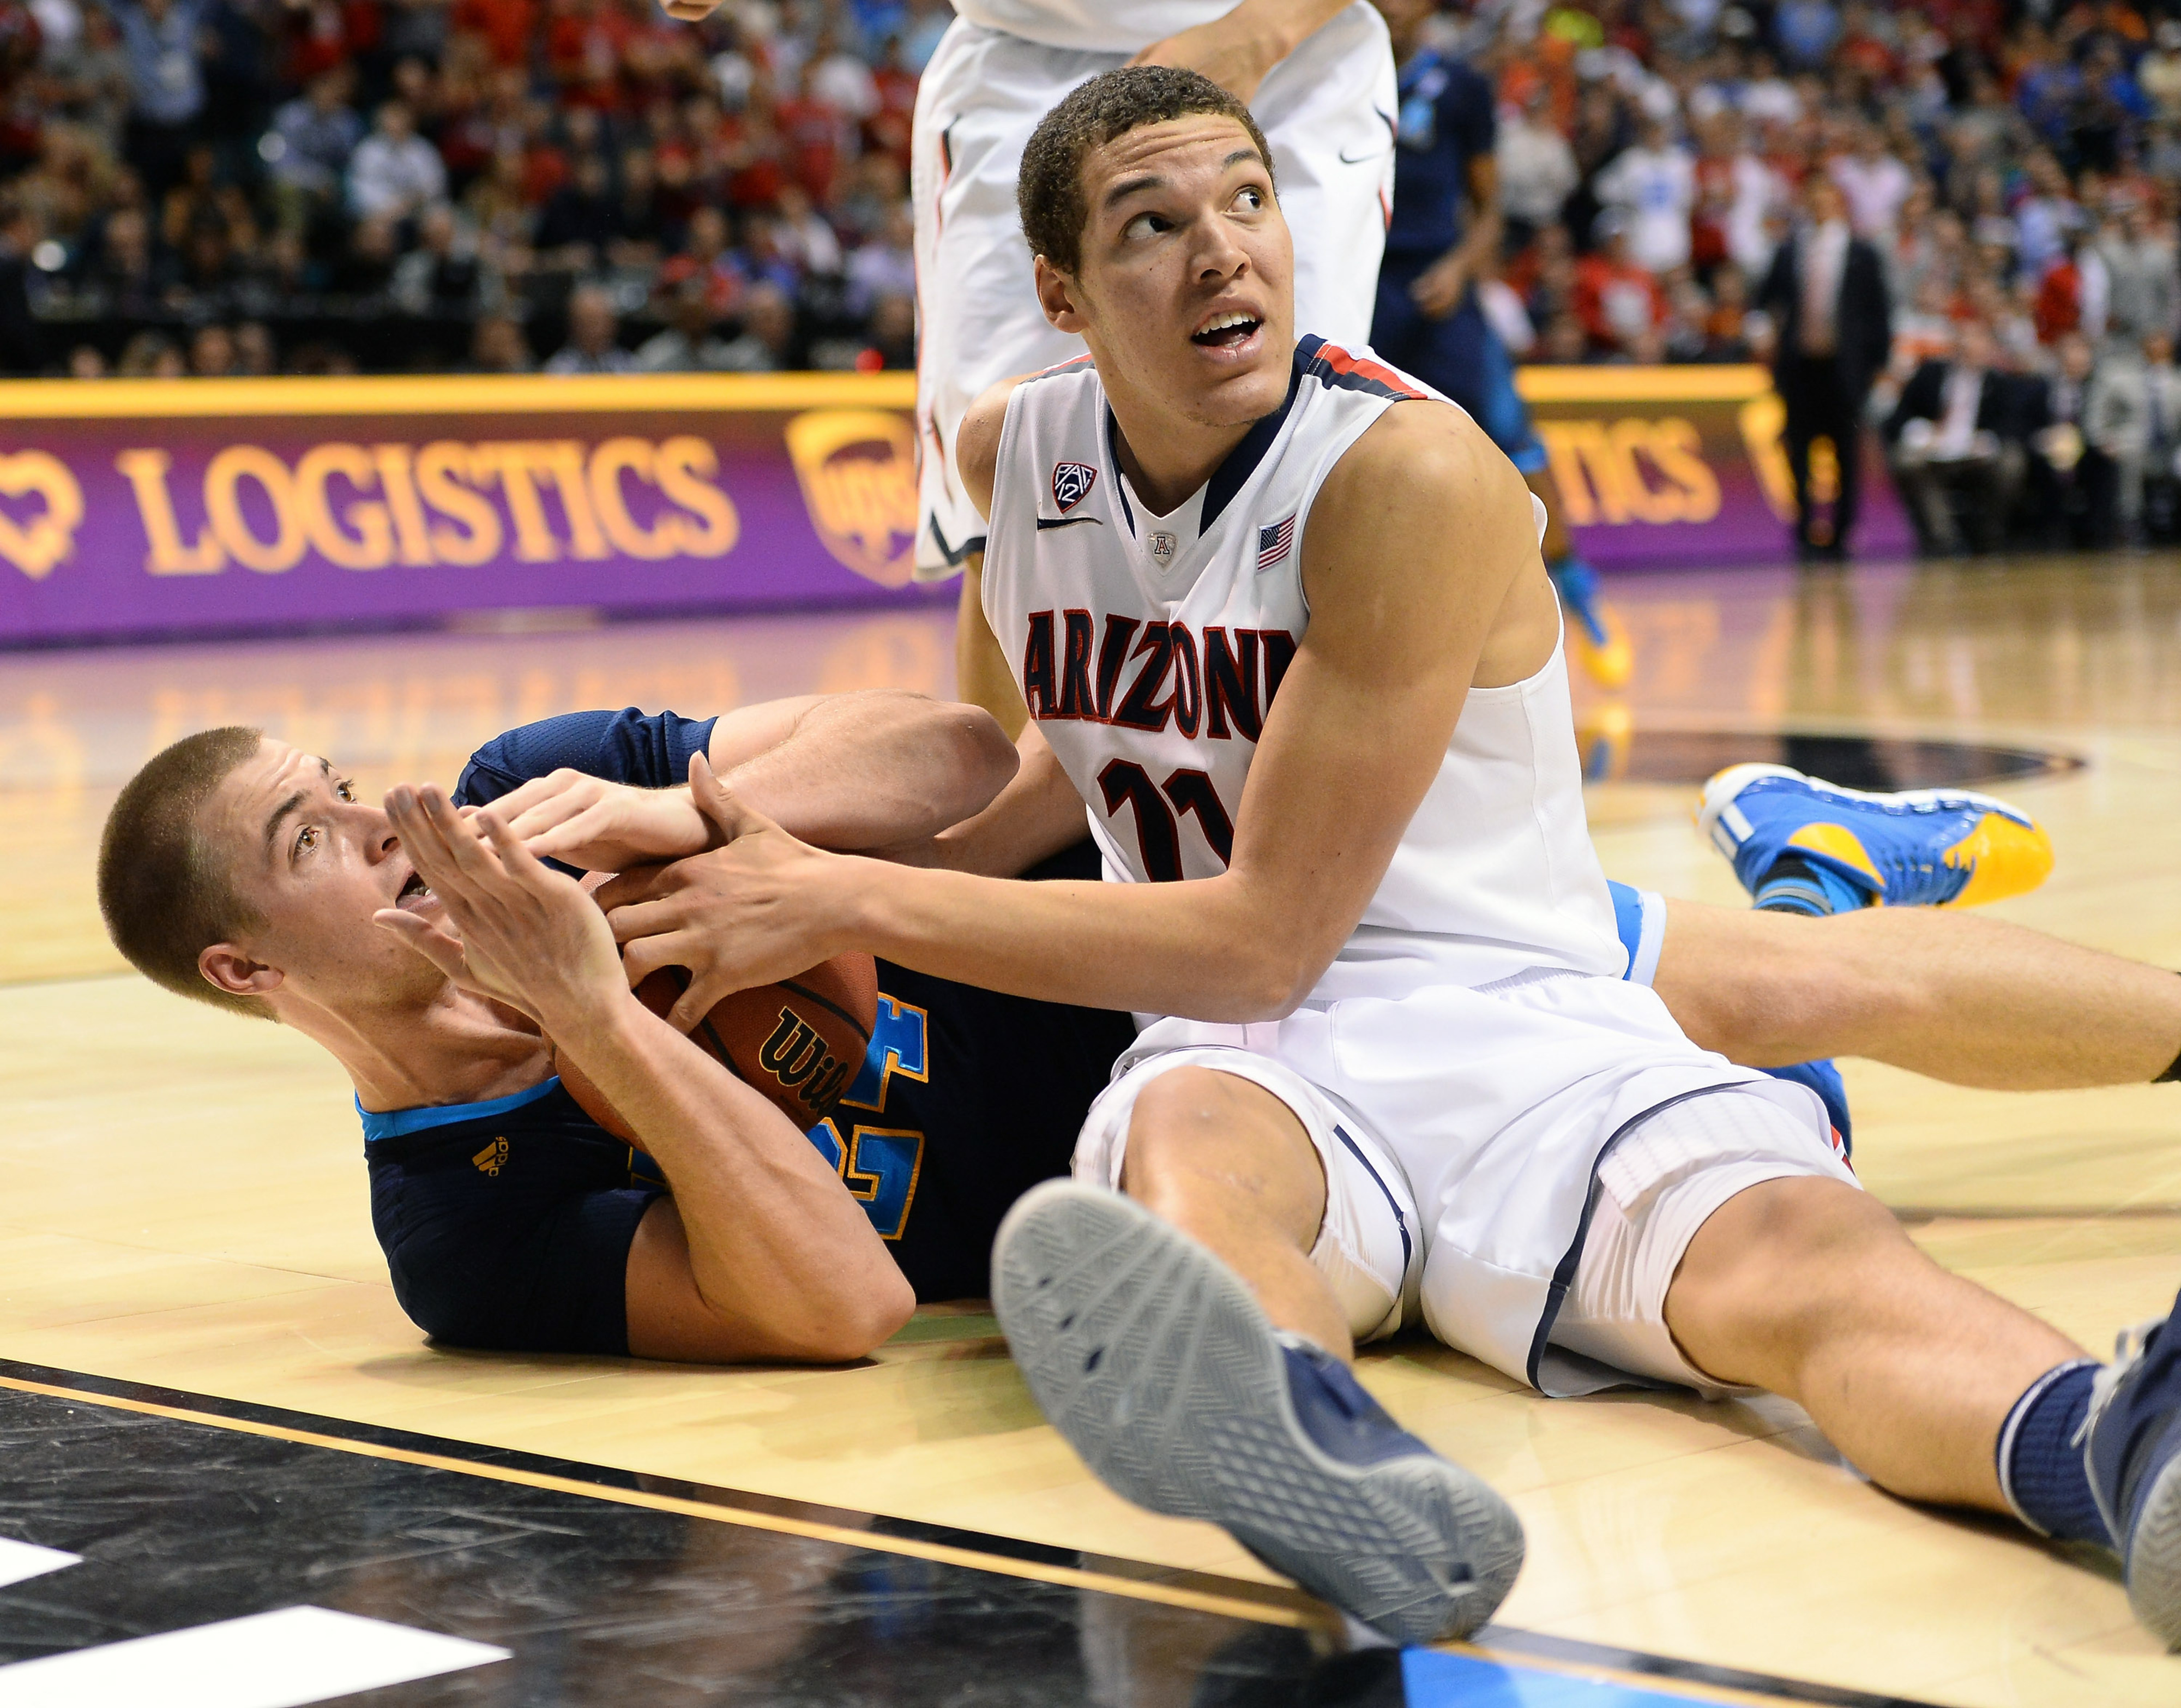 Travis Wear dive for a loose ball and time out was a symbol of the game.